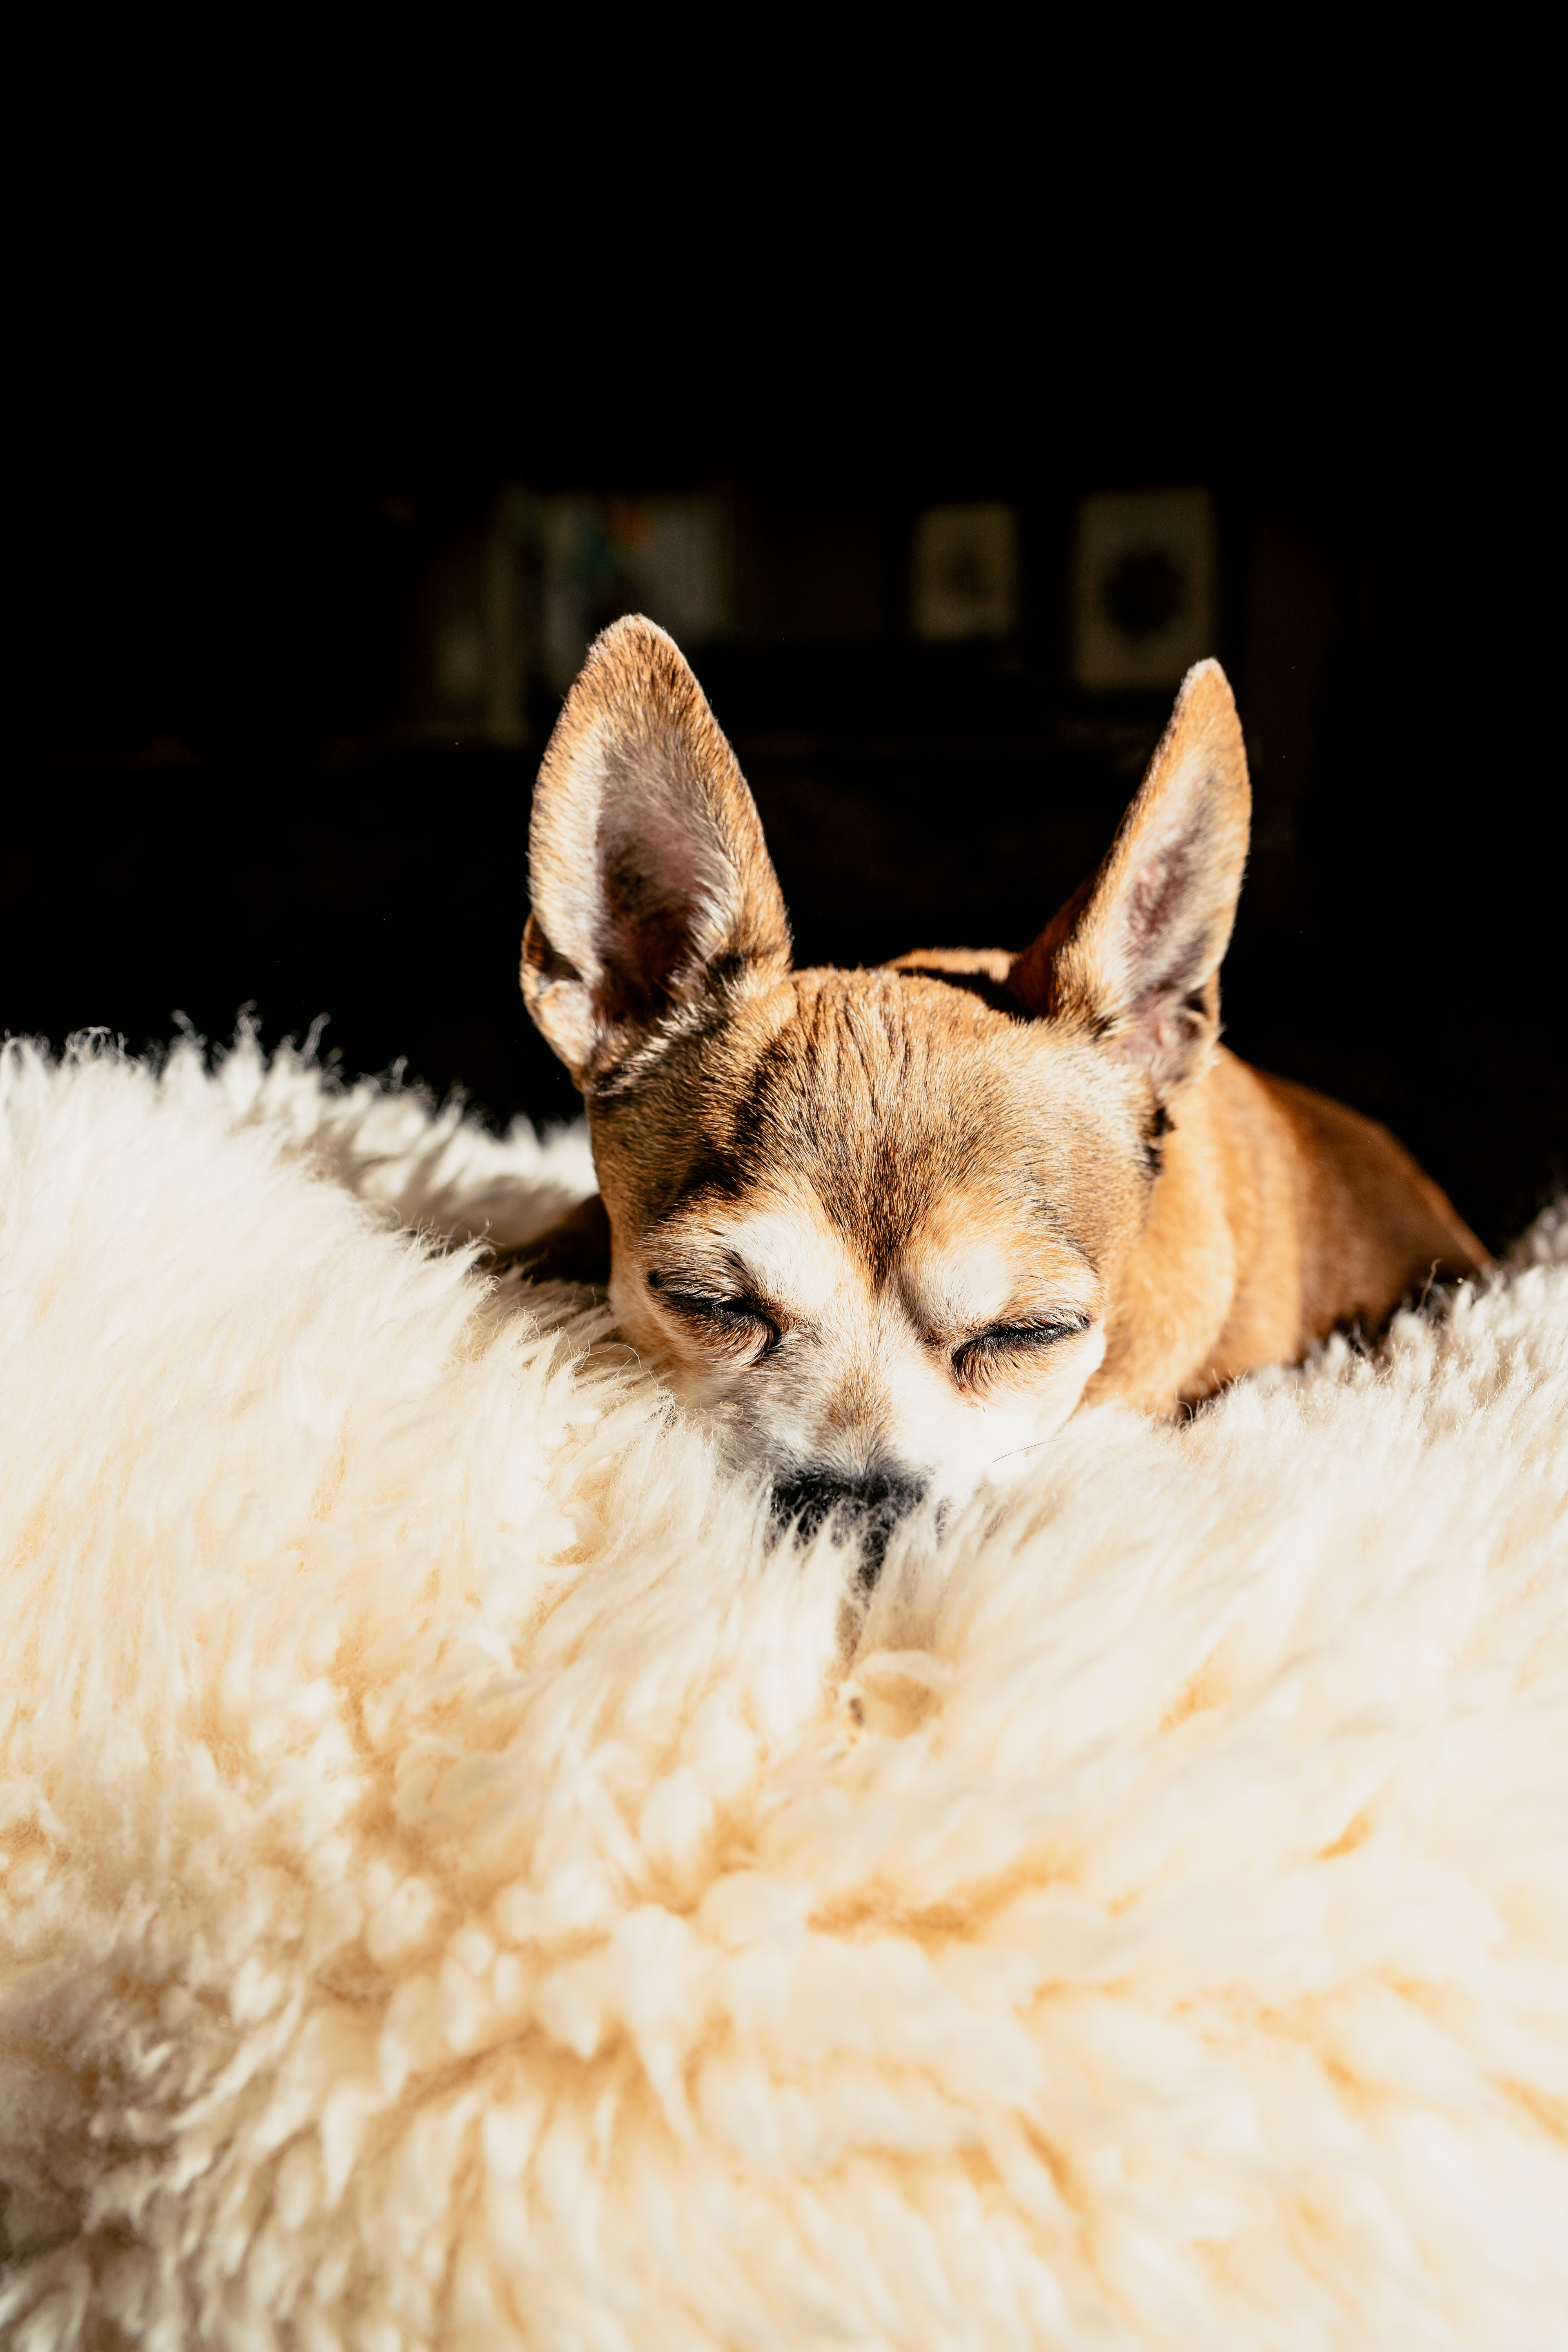 94548 download wallpaper Animals, Chihuahua, Dog, Brown, Pet, Sleep, Dream screensavers and pictures for free